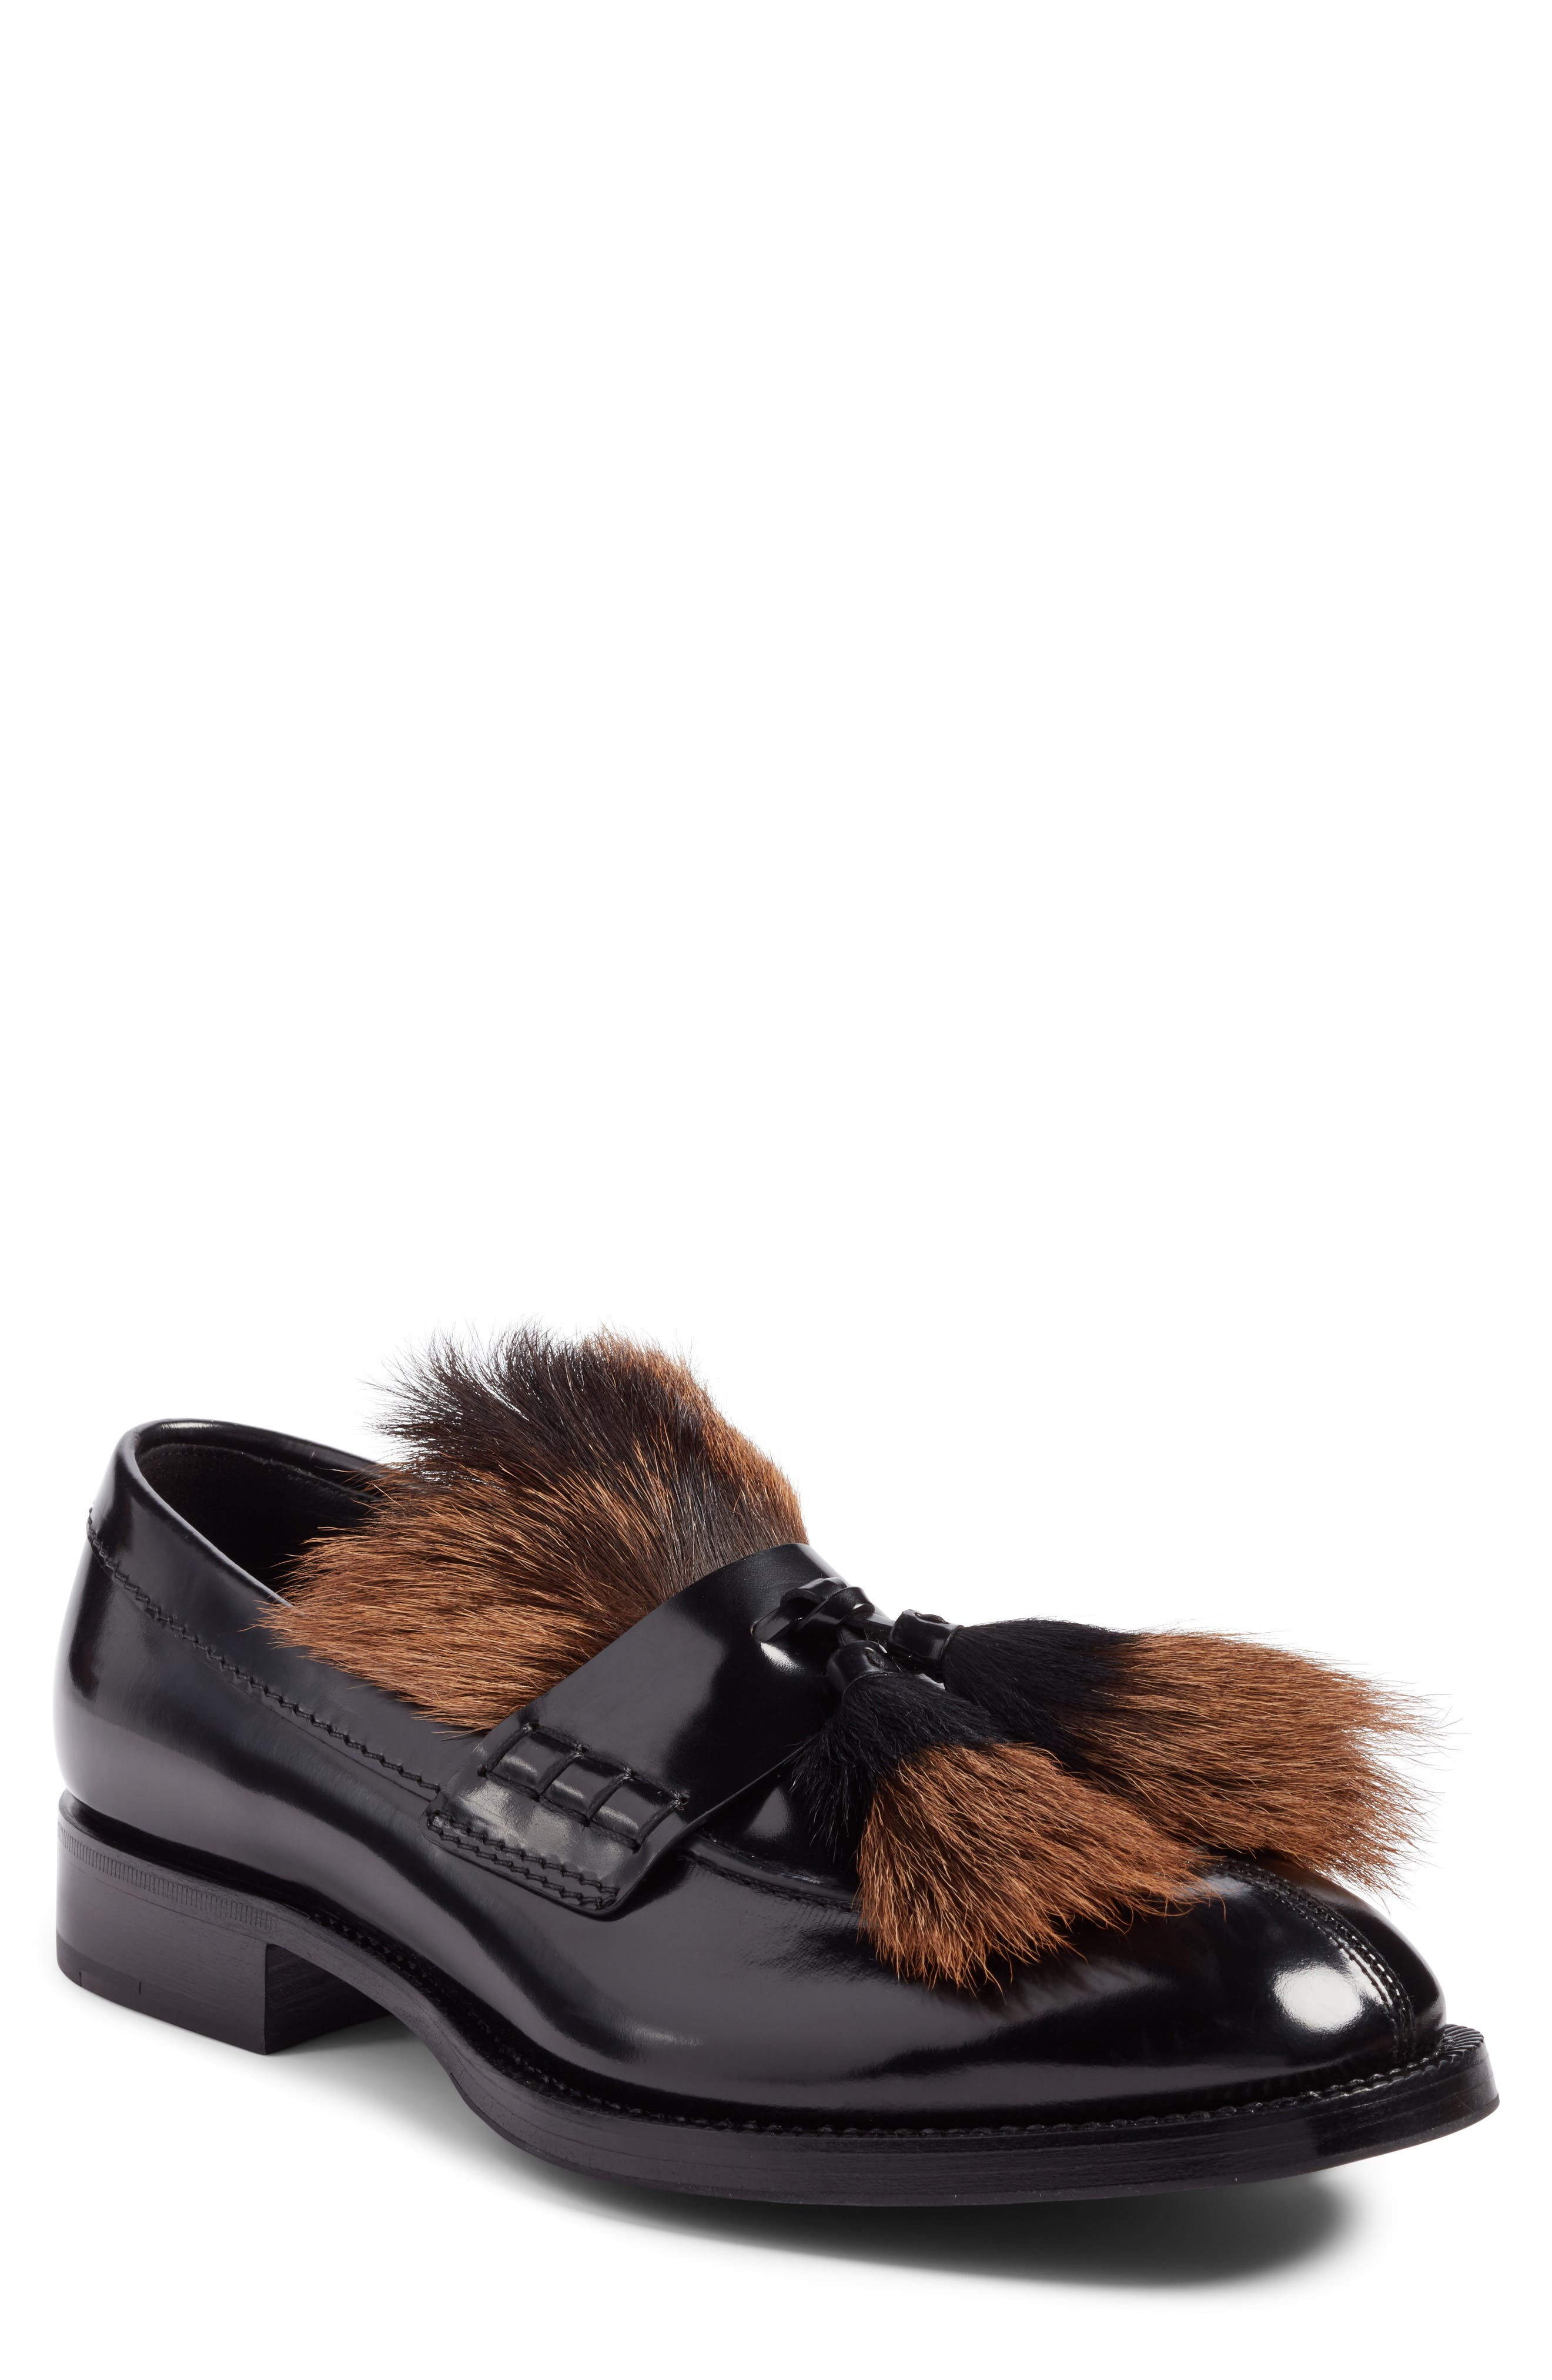 Tassel Loafer with Genuine Goat Hair Trim,                         Main,                         color, Nero Leather